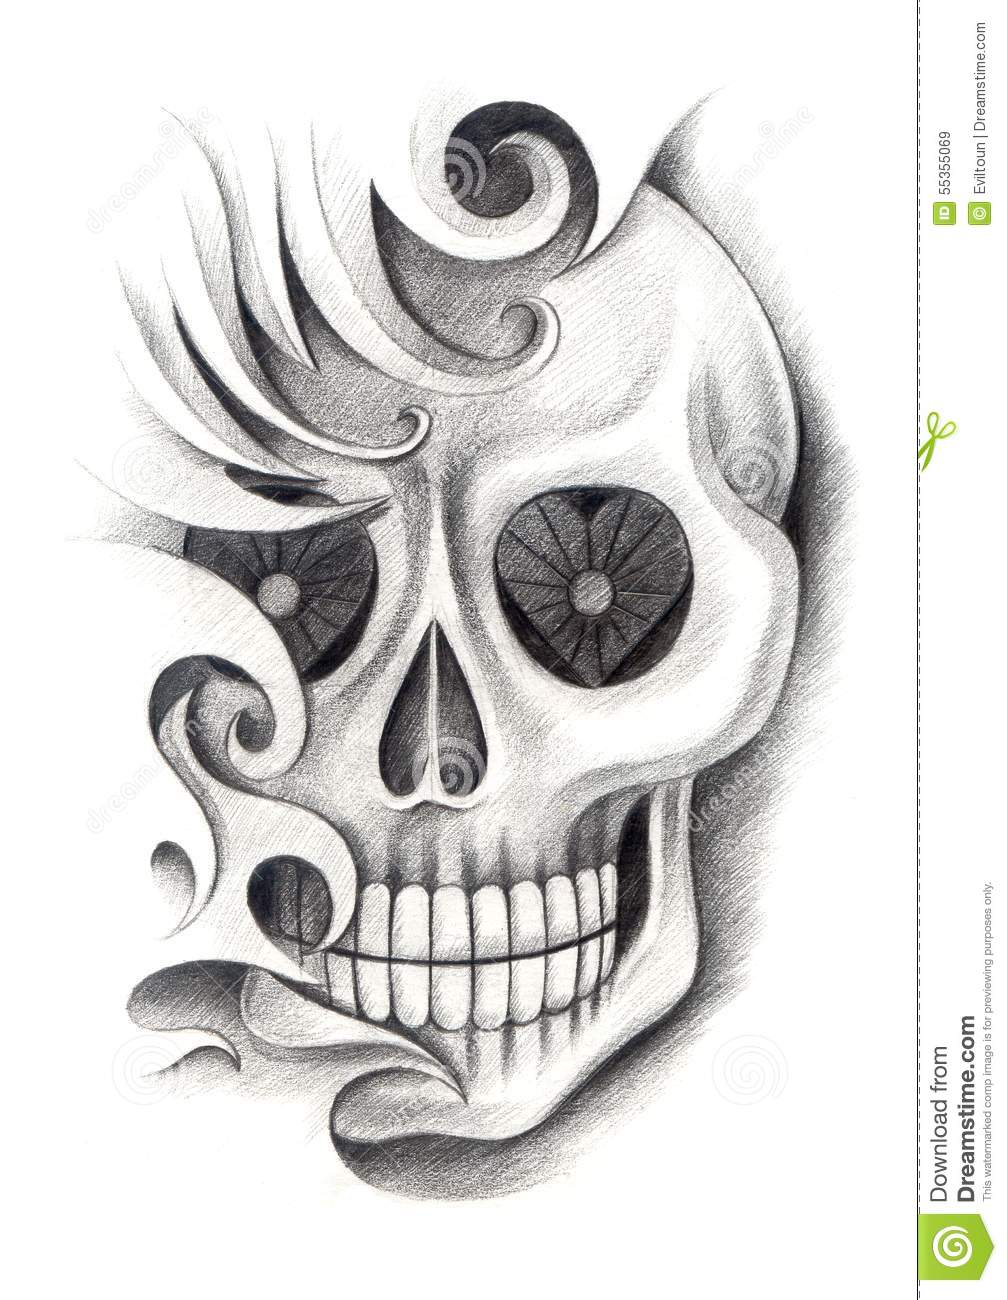 skull art tattoo stock illustration image 55355069. Black Bedroom Furniture Sets. Home Design Ideas